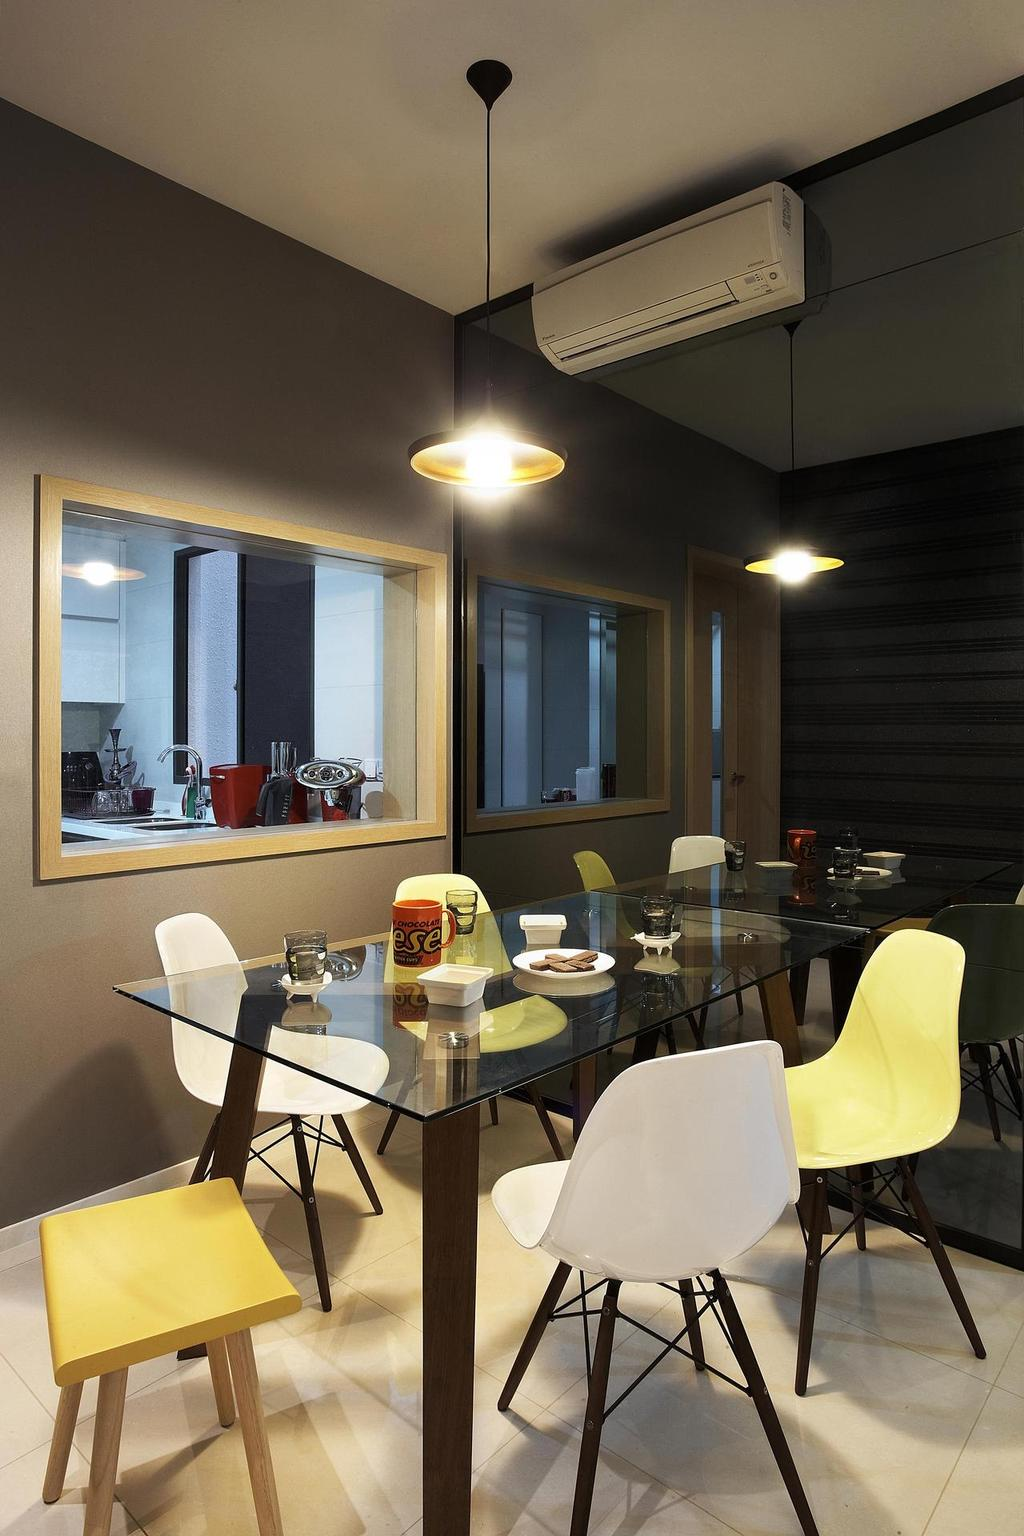 Contemporary, Condo, Dining Room, Meadows @ Peirce, Interior Designer, Free Space Intent, Stools, Chair, Dining Table, Table, Glass Table, Mirror, Full Length Mirror, Cut Out Wall, Hanging Light, Lighting, Tinted Mirror, Beige, Furniture, Toilet, Sink, Indoors, Interior Design, Room, Restaurant